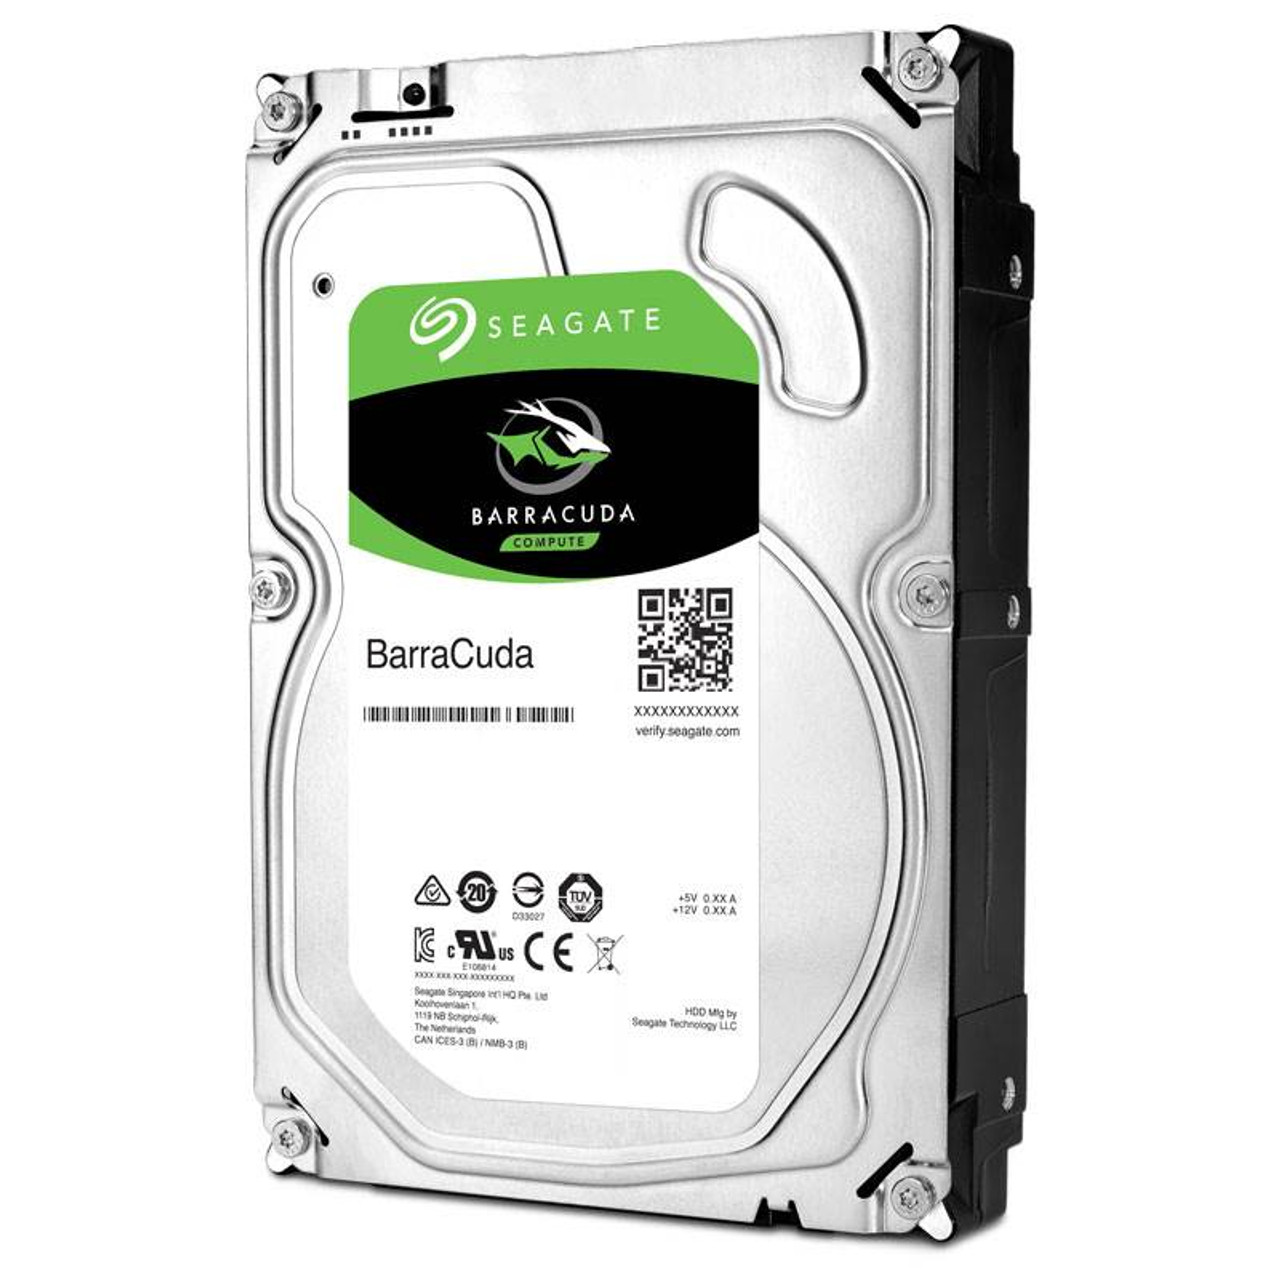 Product image for Seagate Barracuda 1TB 3.5in Hard Drive | CX Computer Superstore